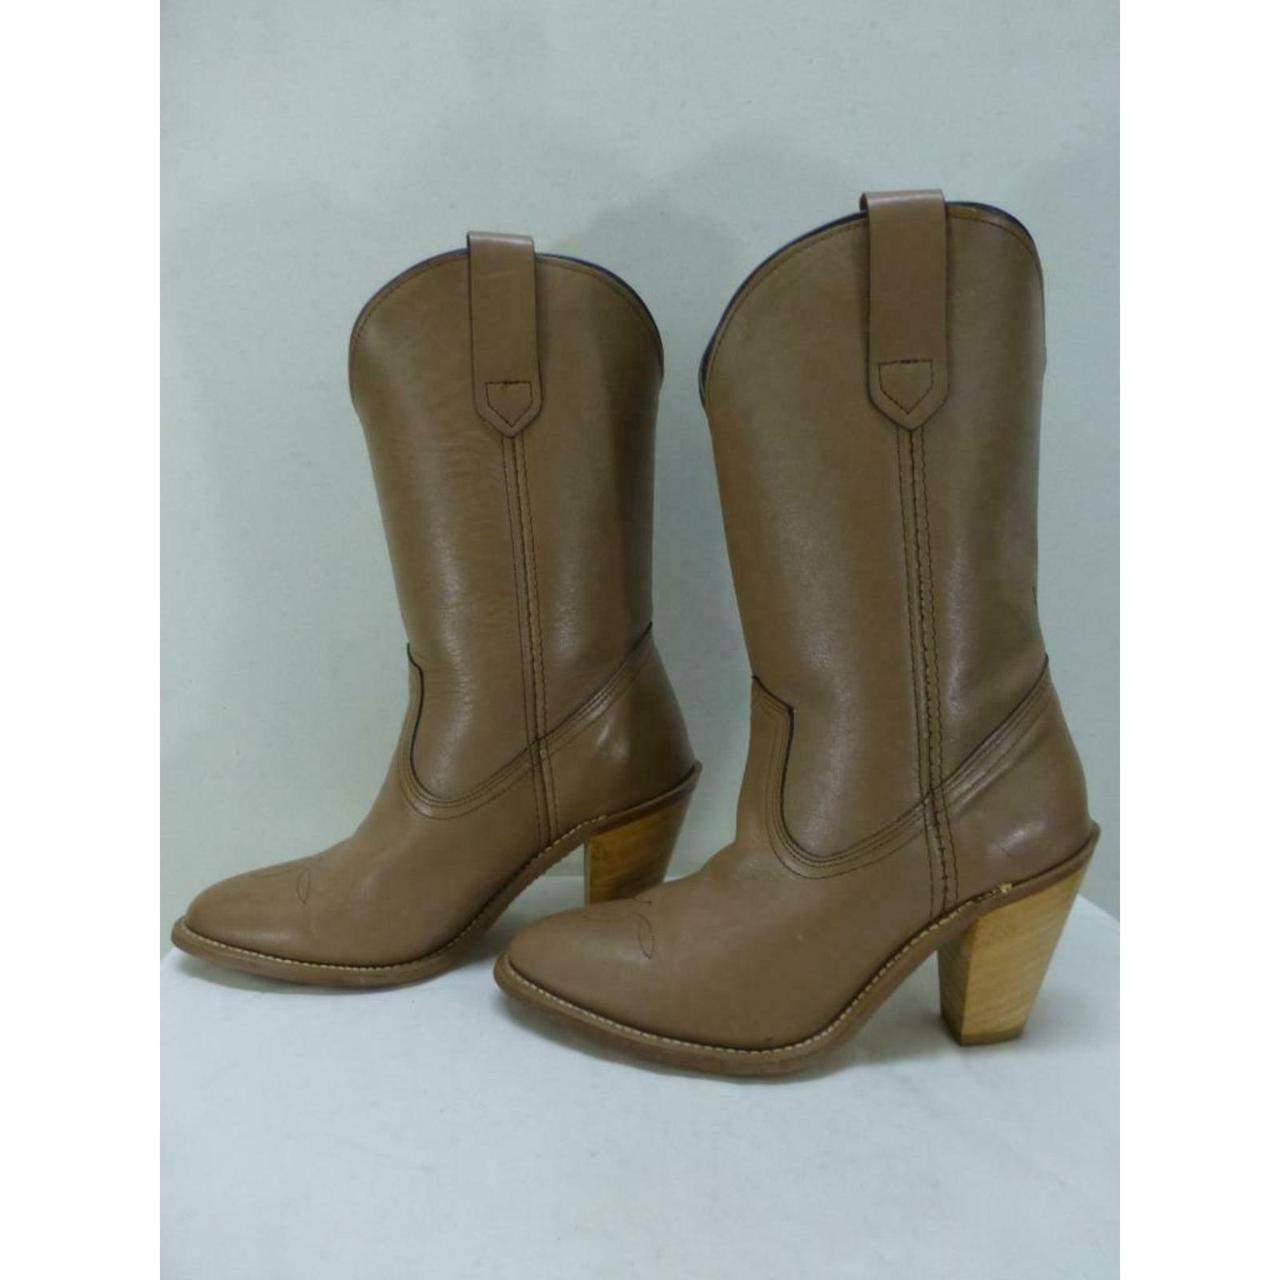 Product Image 1 - Frye American Classics tan leather